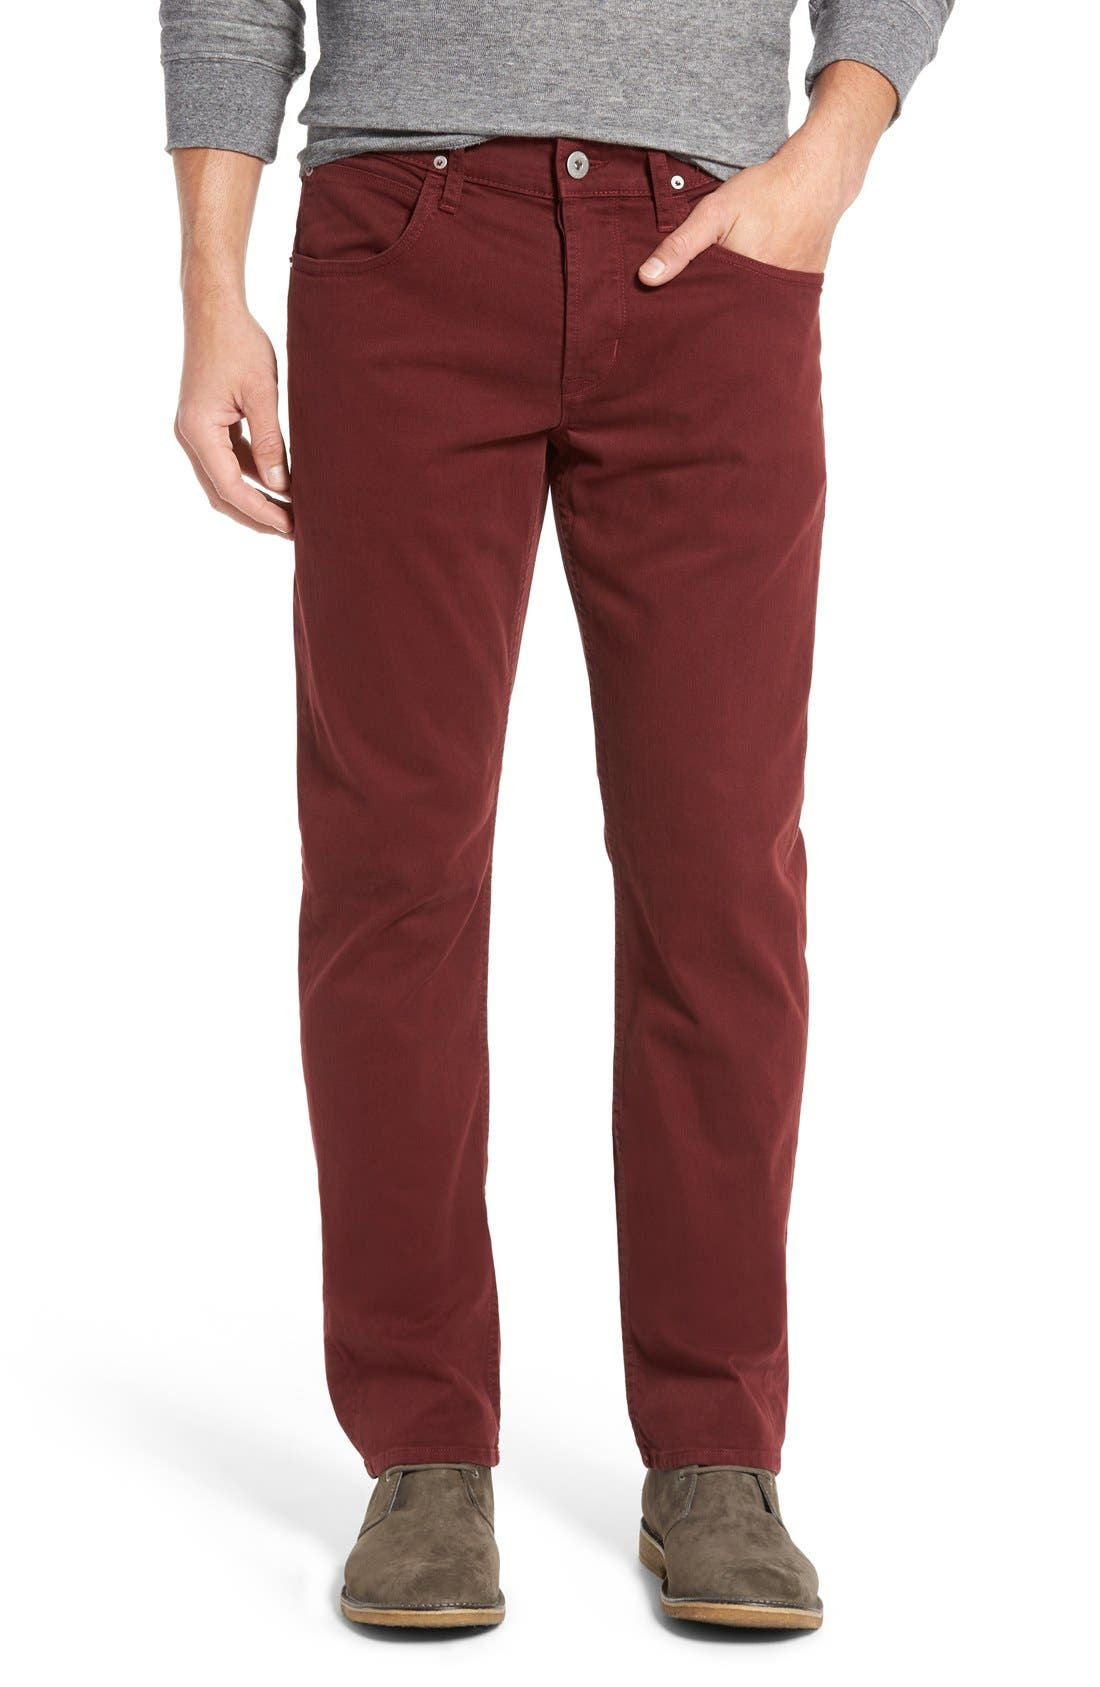 Alternate Image 1 Selected - Hudson Jeans 'Byron' Slim Straight Leg Jeans